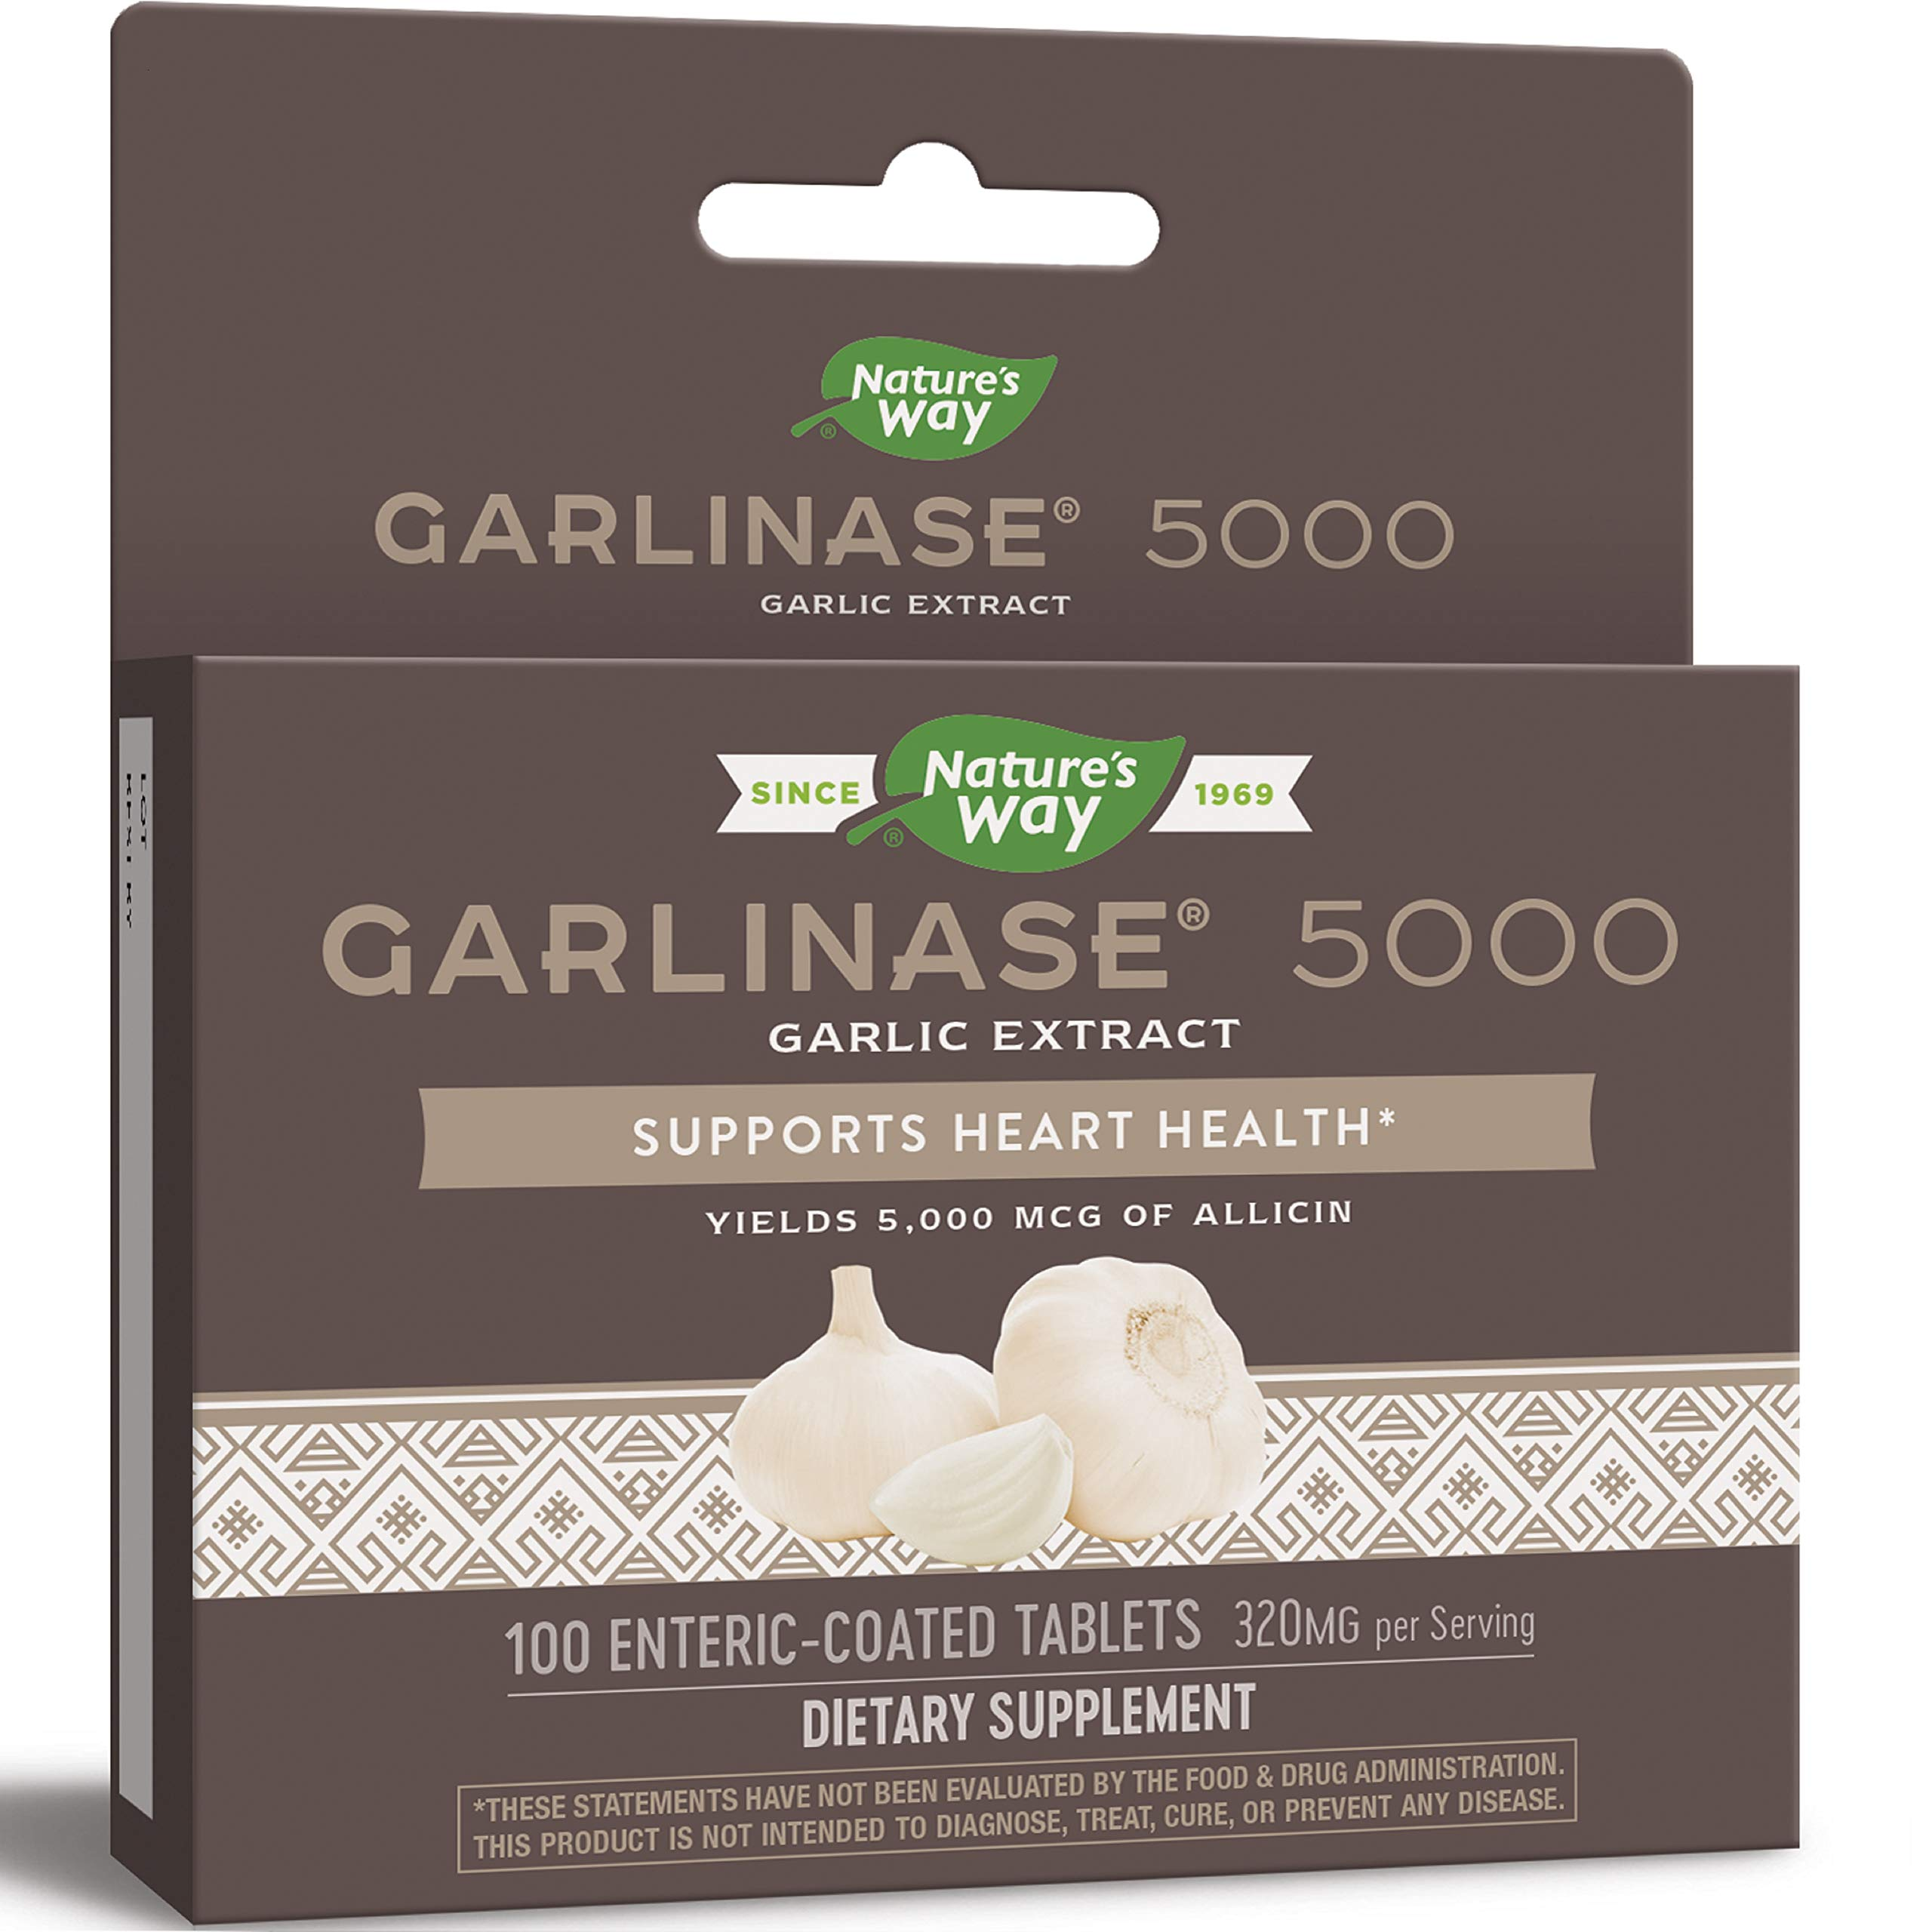 Nature's Way Garlinase 5000; 3.4% Garlic Extract Per Serving; 100 Enteric-Coated Tablets (Packaging May Vary) by Nature's Way